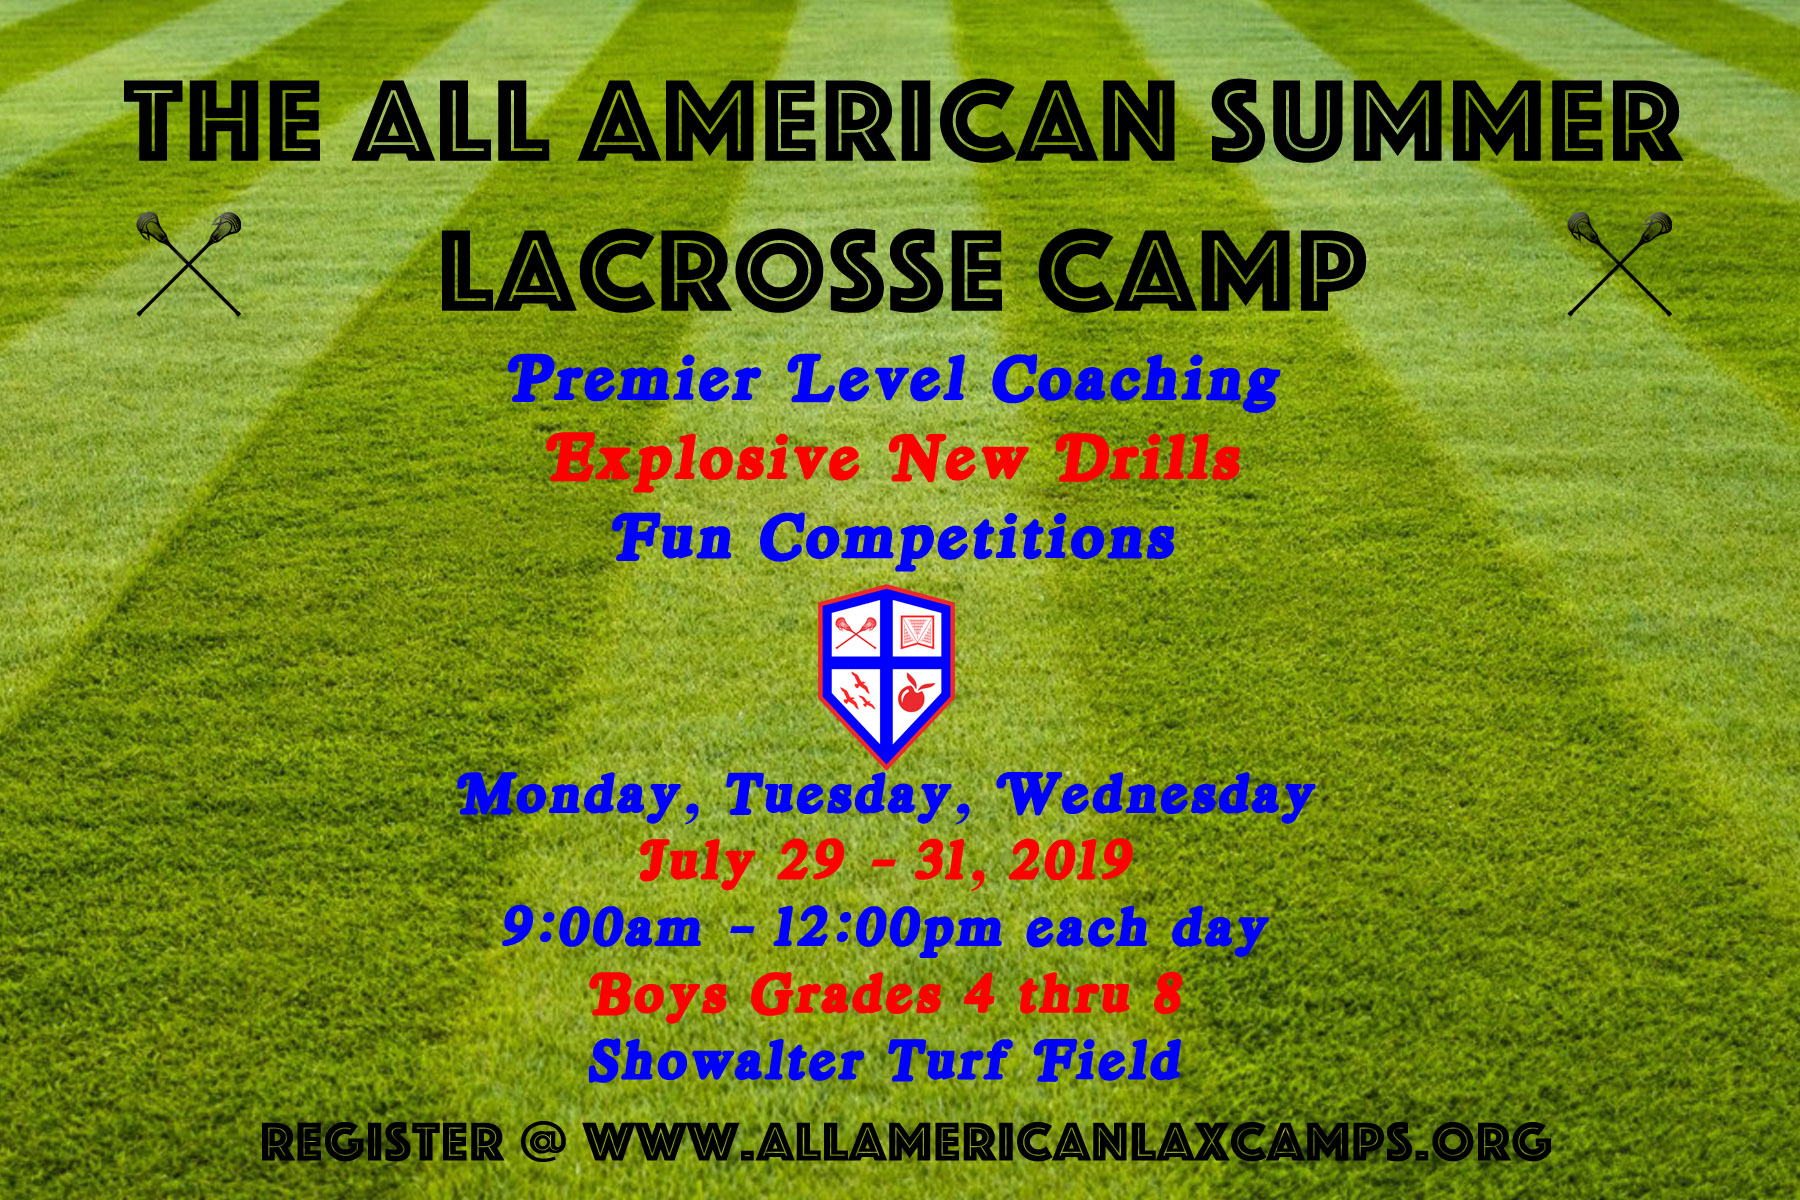 All American Summer Lax Camp 2019